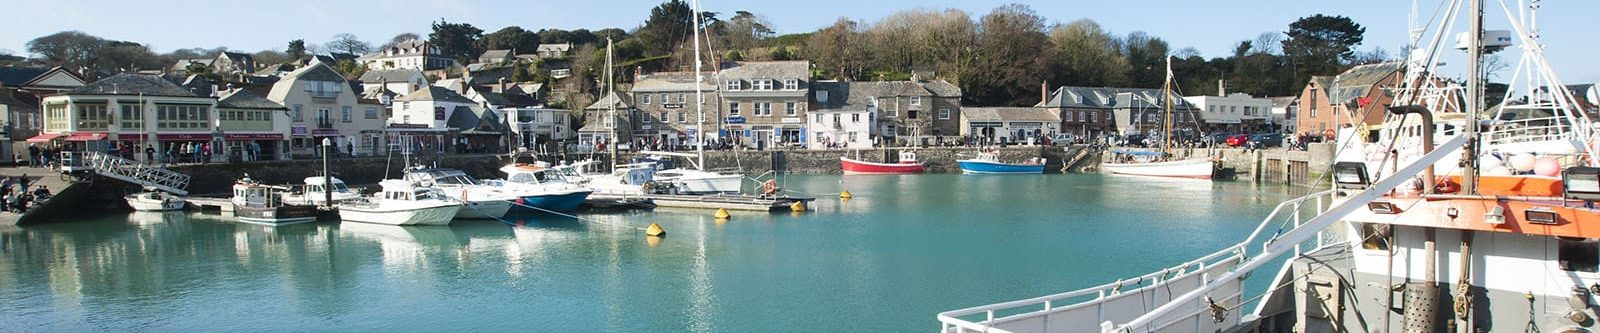 fishing boat in Padstow